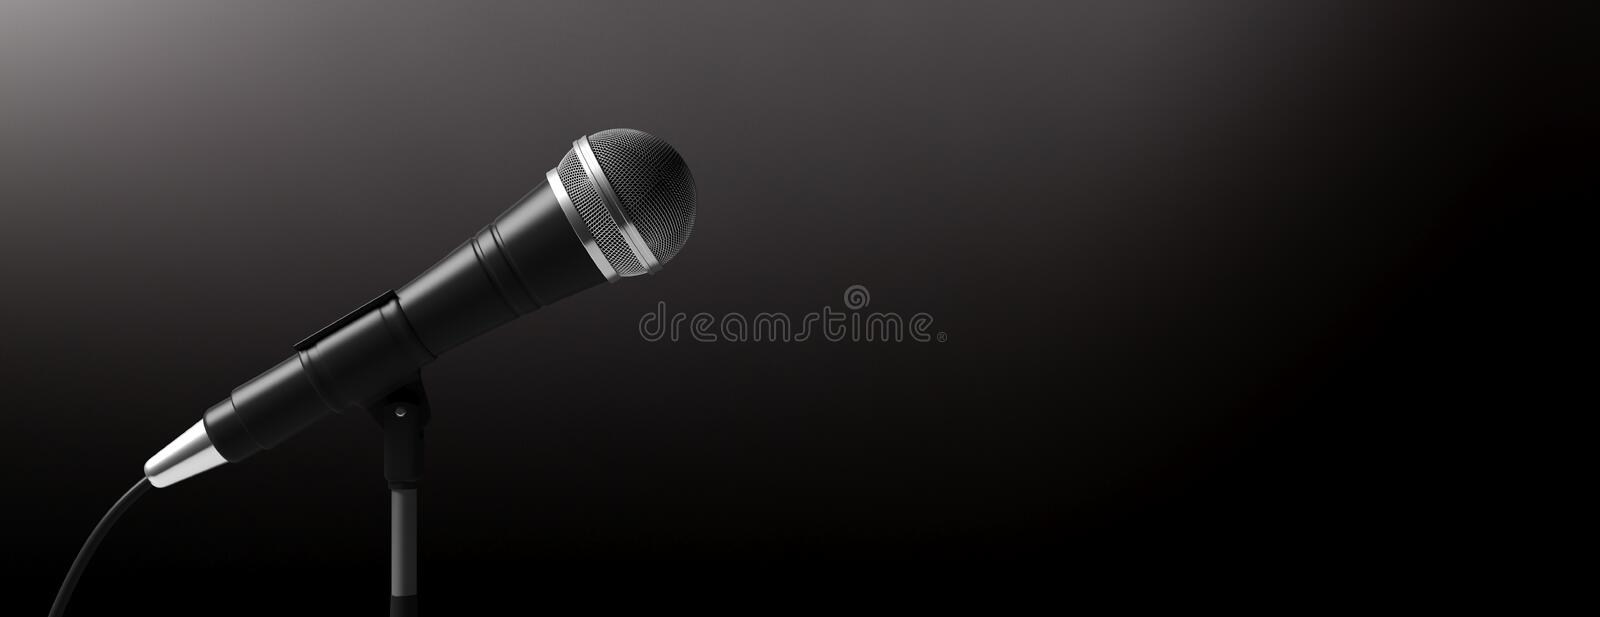 Microphone on stand isolated on black background, banner, copy space. 3d illustration. Cable microphone on stand isolated on black background, banner, copy space royalty free illustration